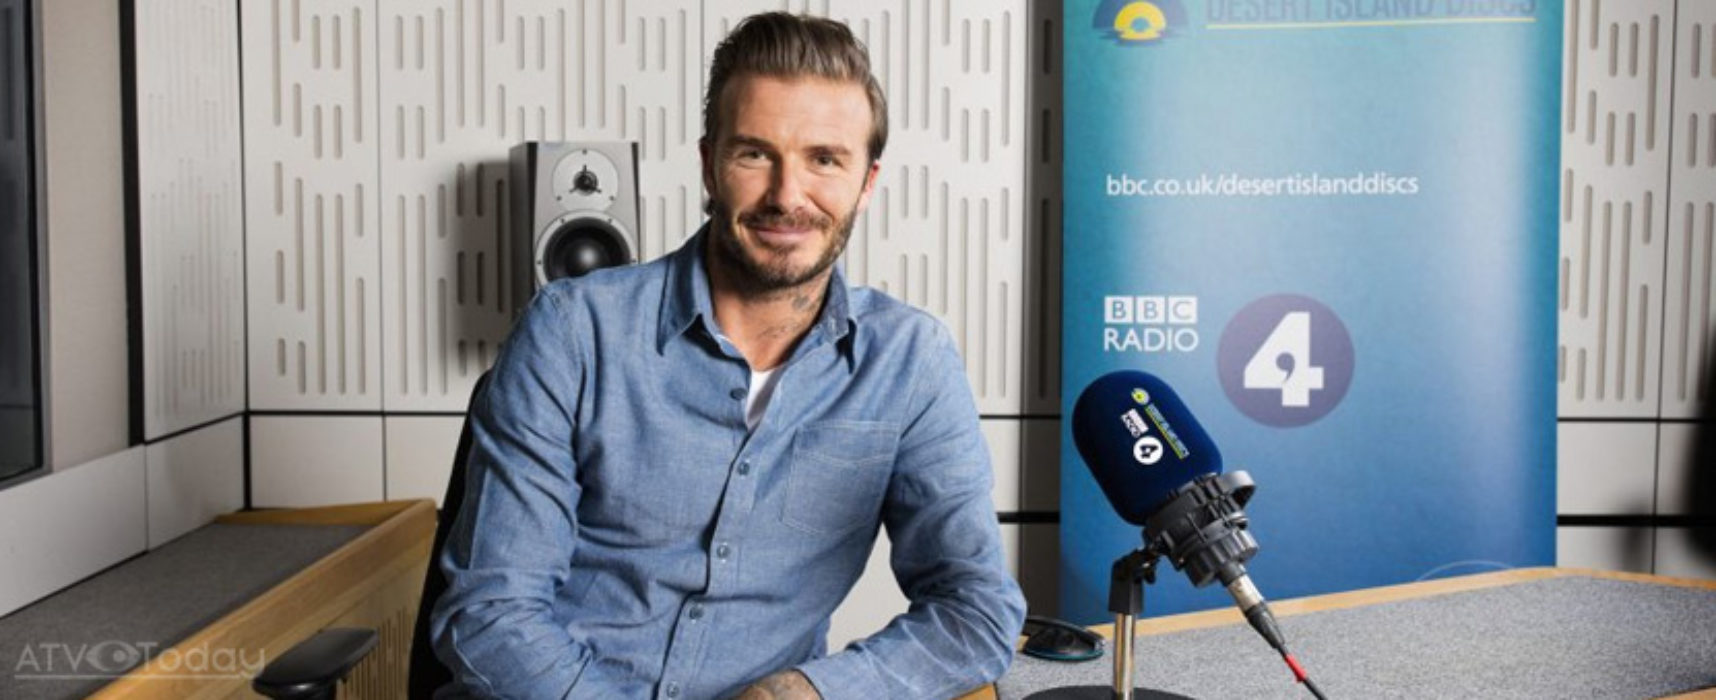 75th anniversary edition of Desert Island Discs to feature David Beckham